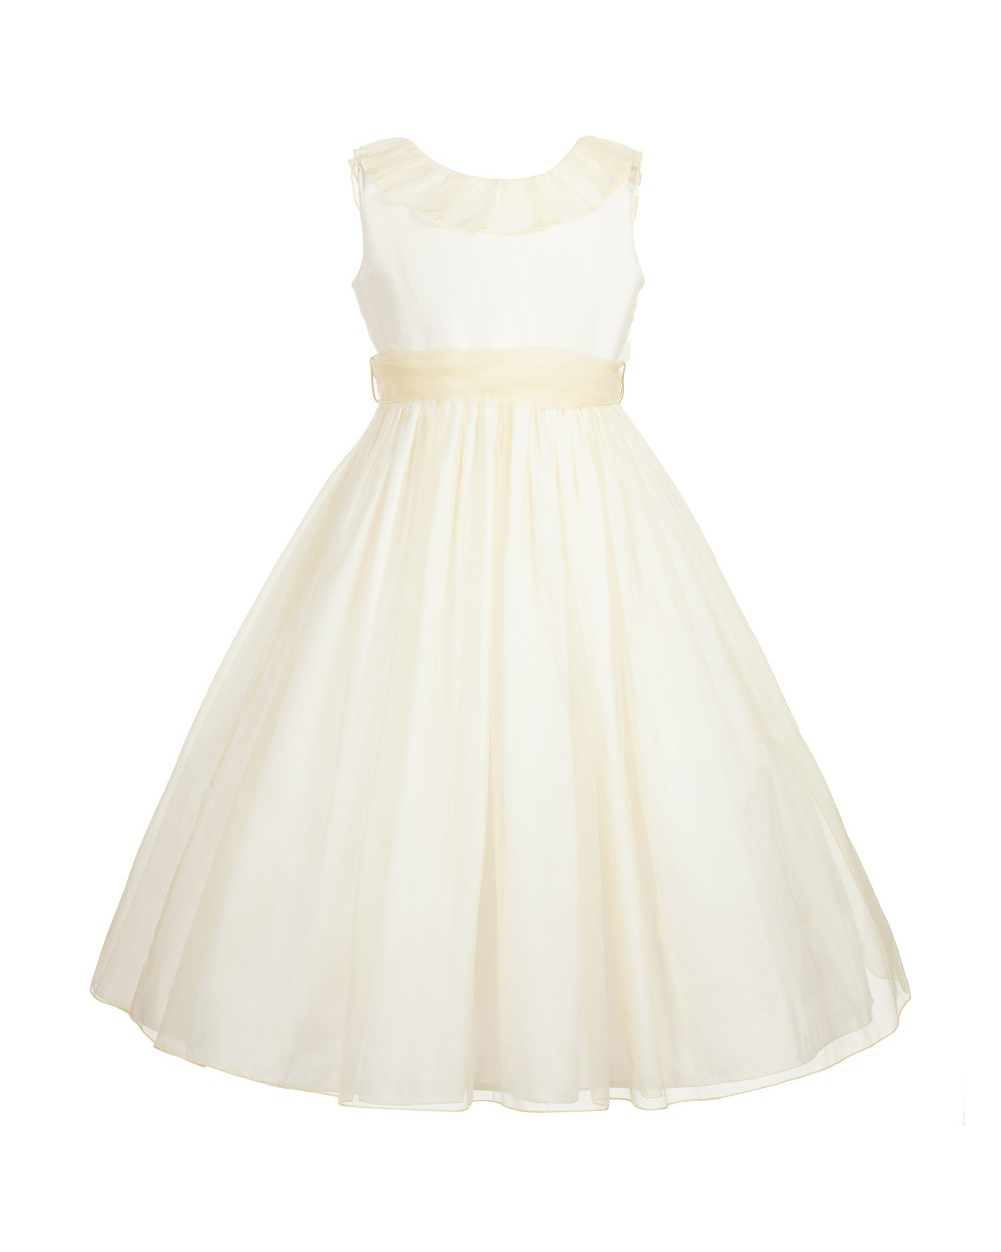 24 Yellow Flower Girl Dresses That Are Perfect for Any